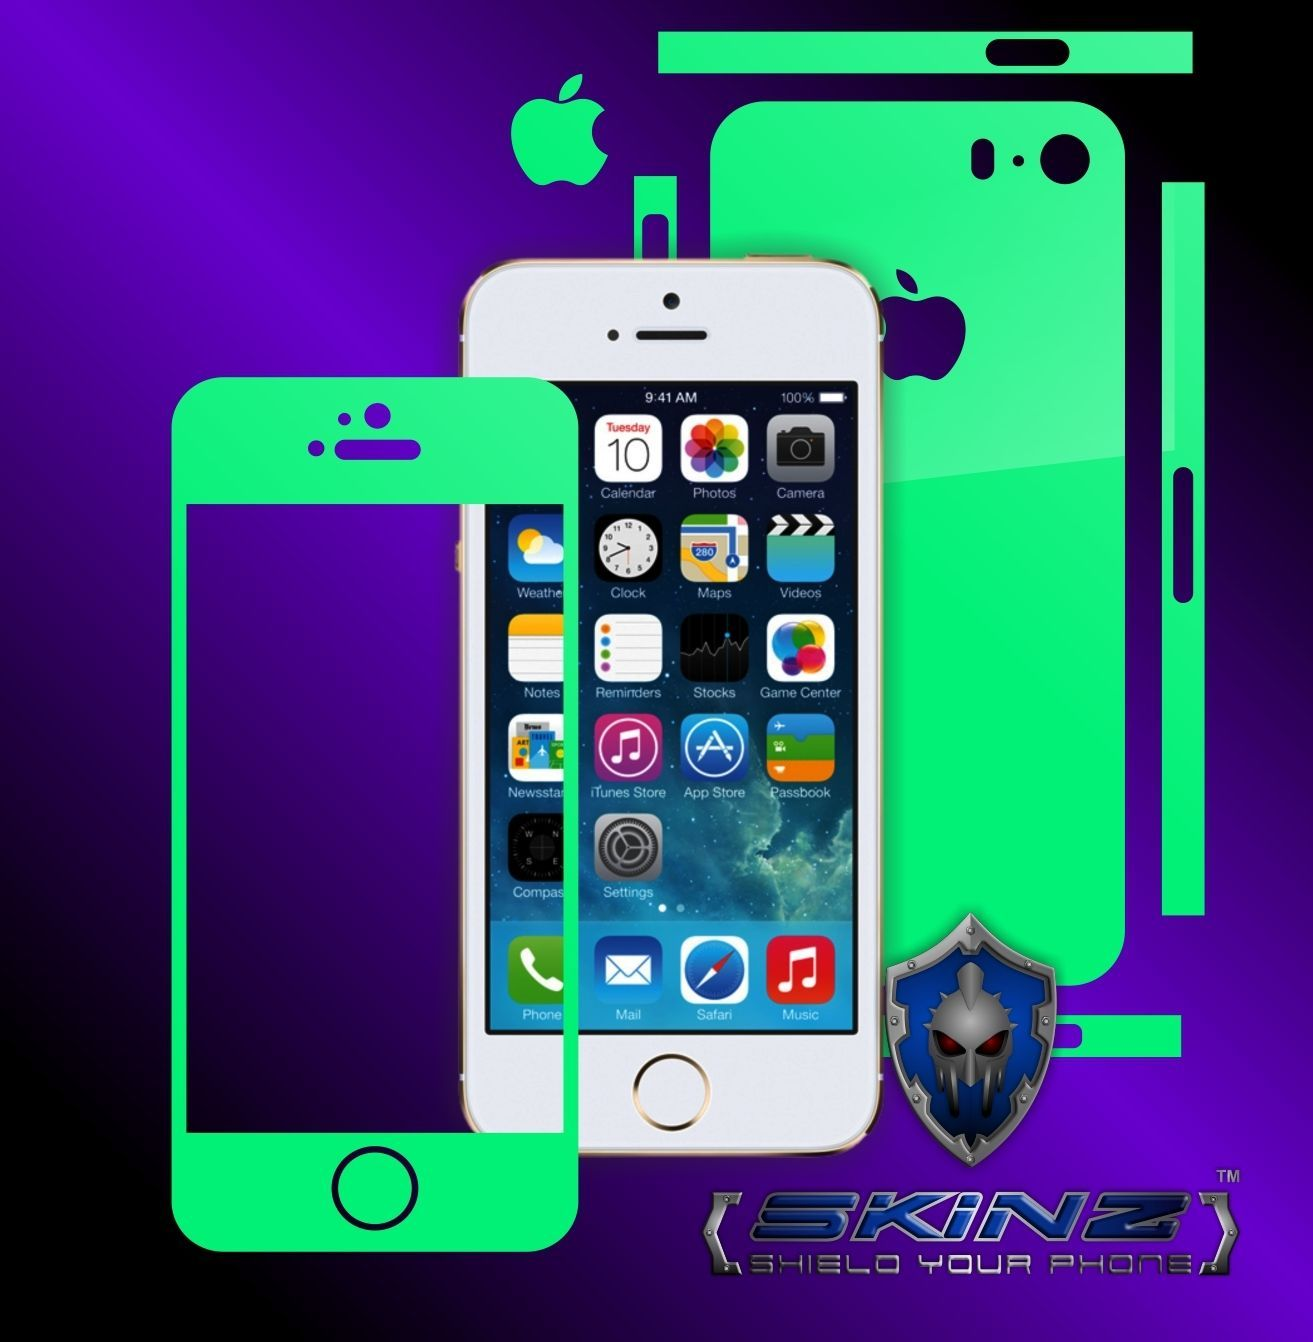 Apple Iphone 5S / SE - Glow in the Dark Skin, Full Body Case Cover Protector